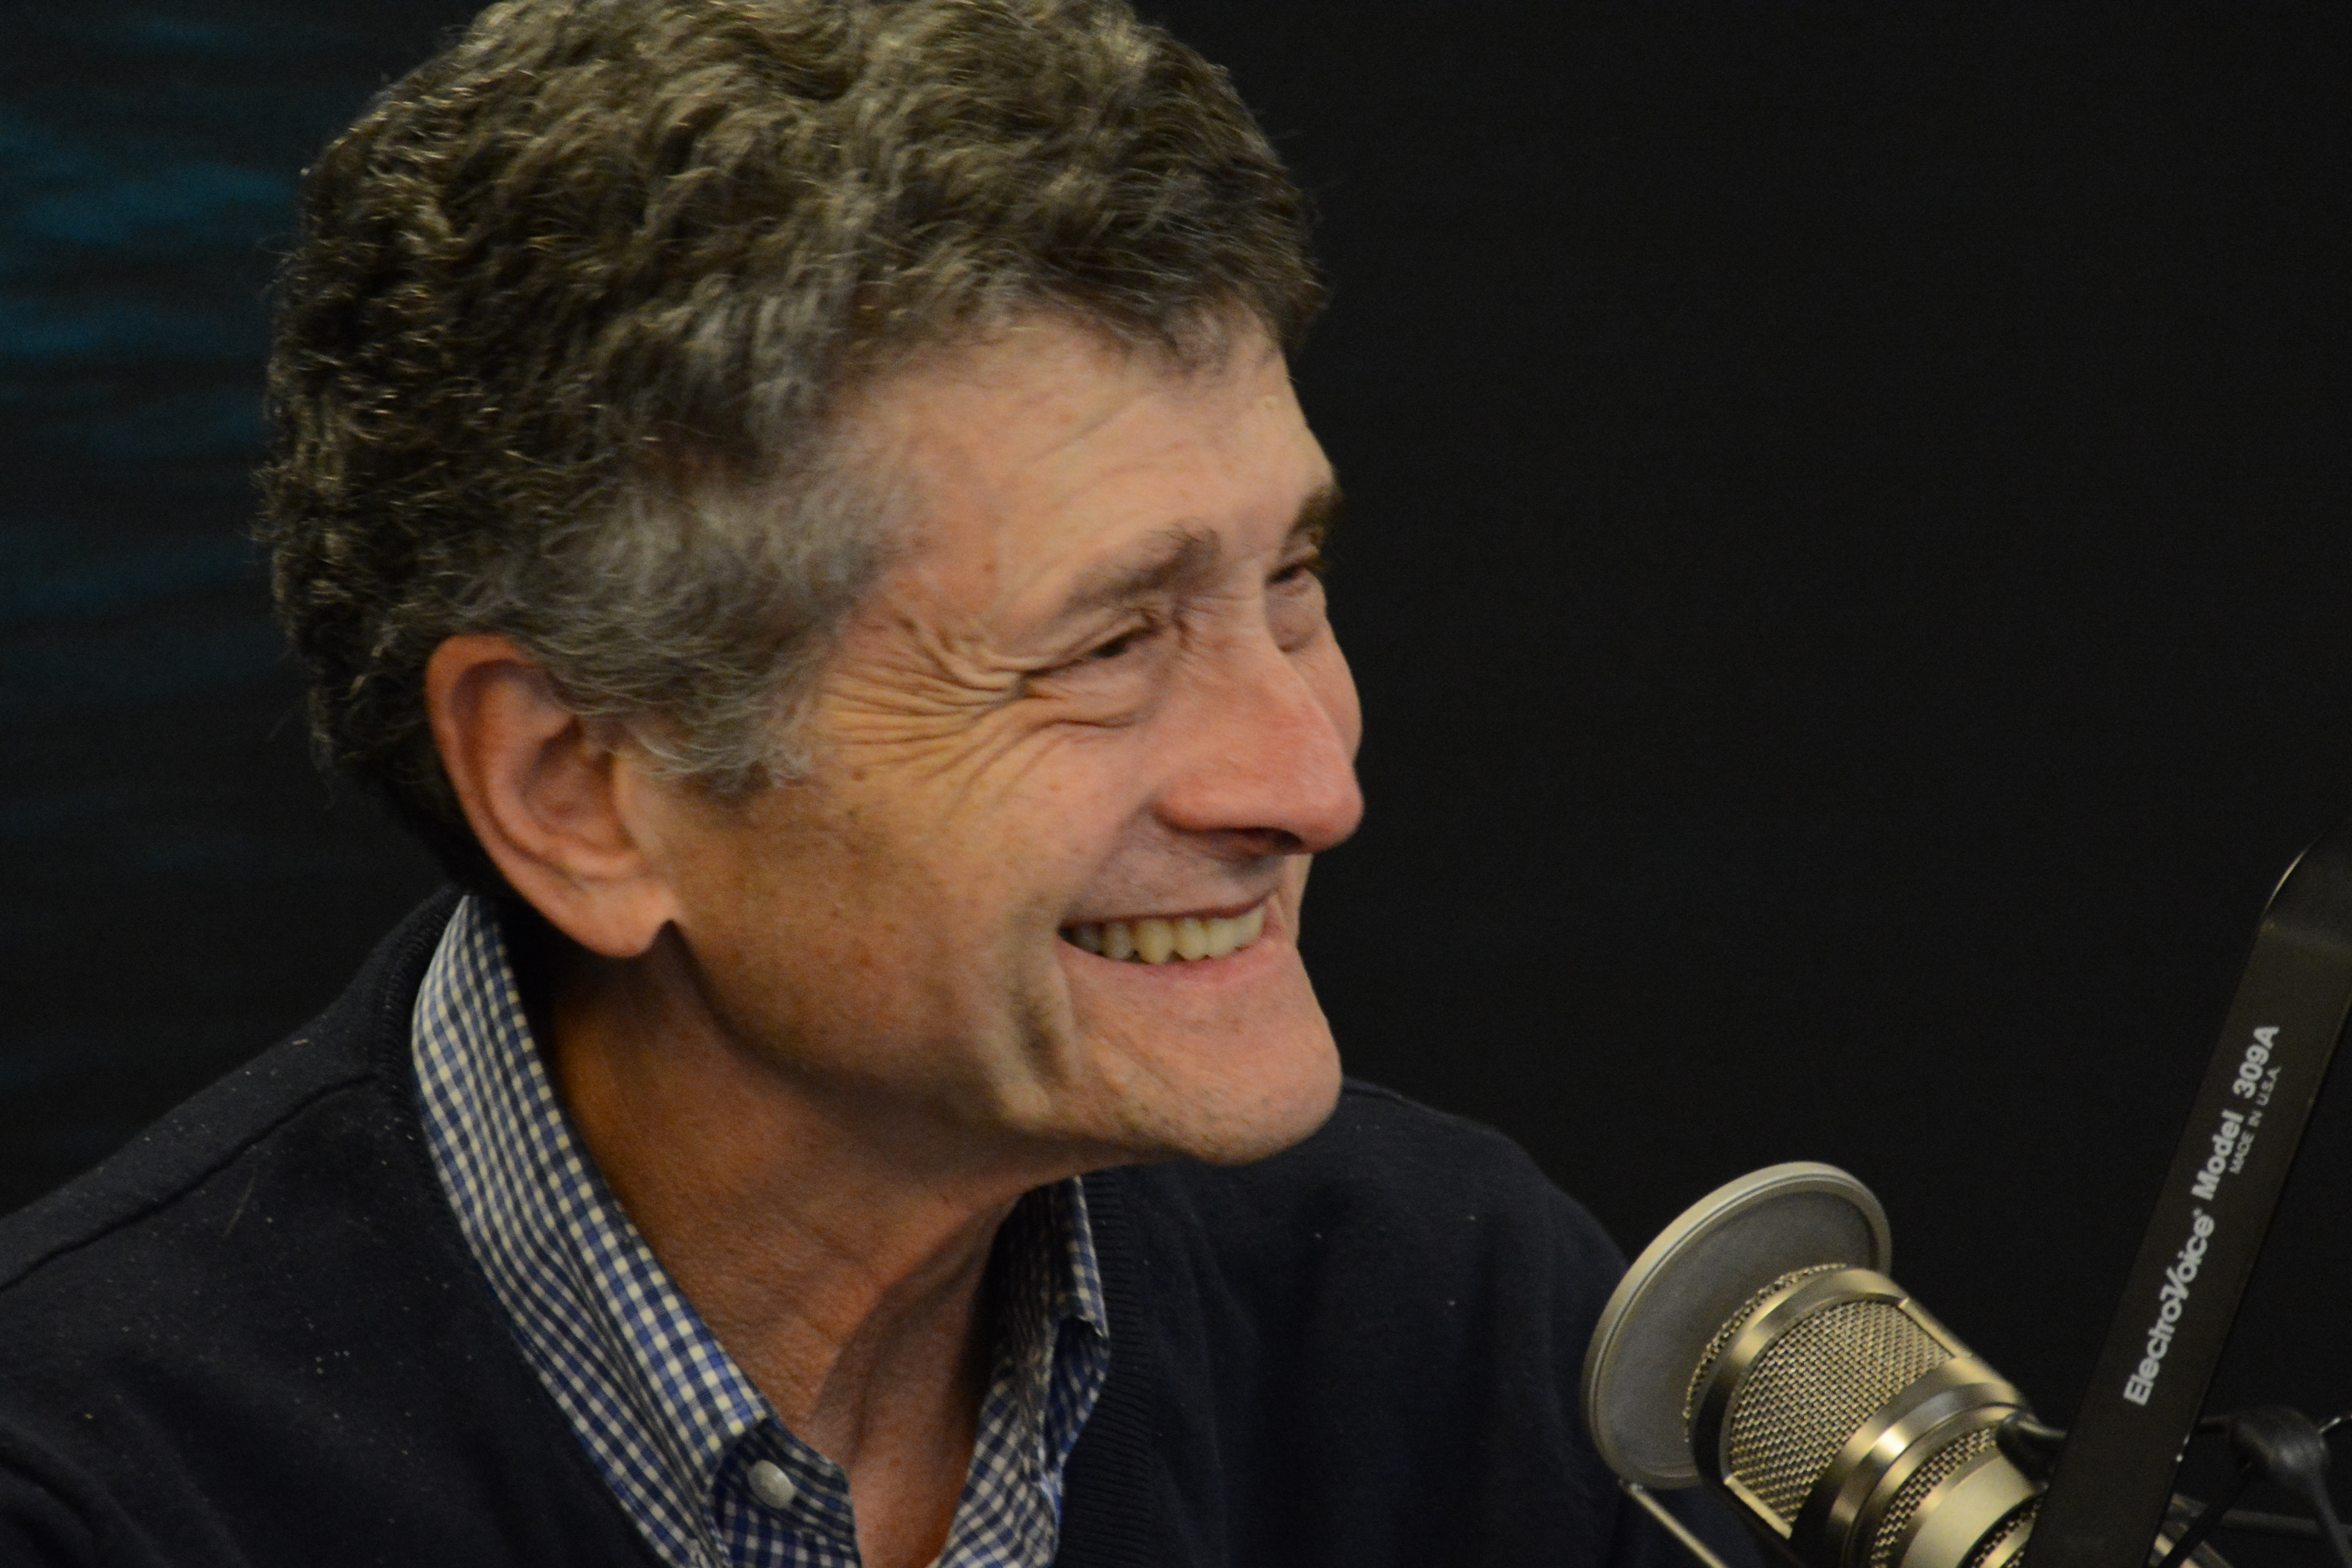 Michael Medved smiling in front of the microphone during a taping of Great Minds